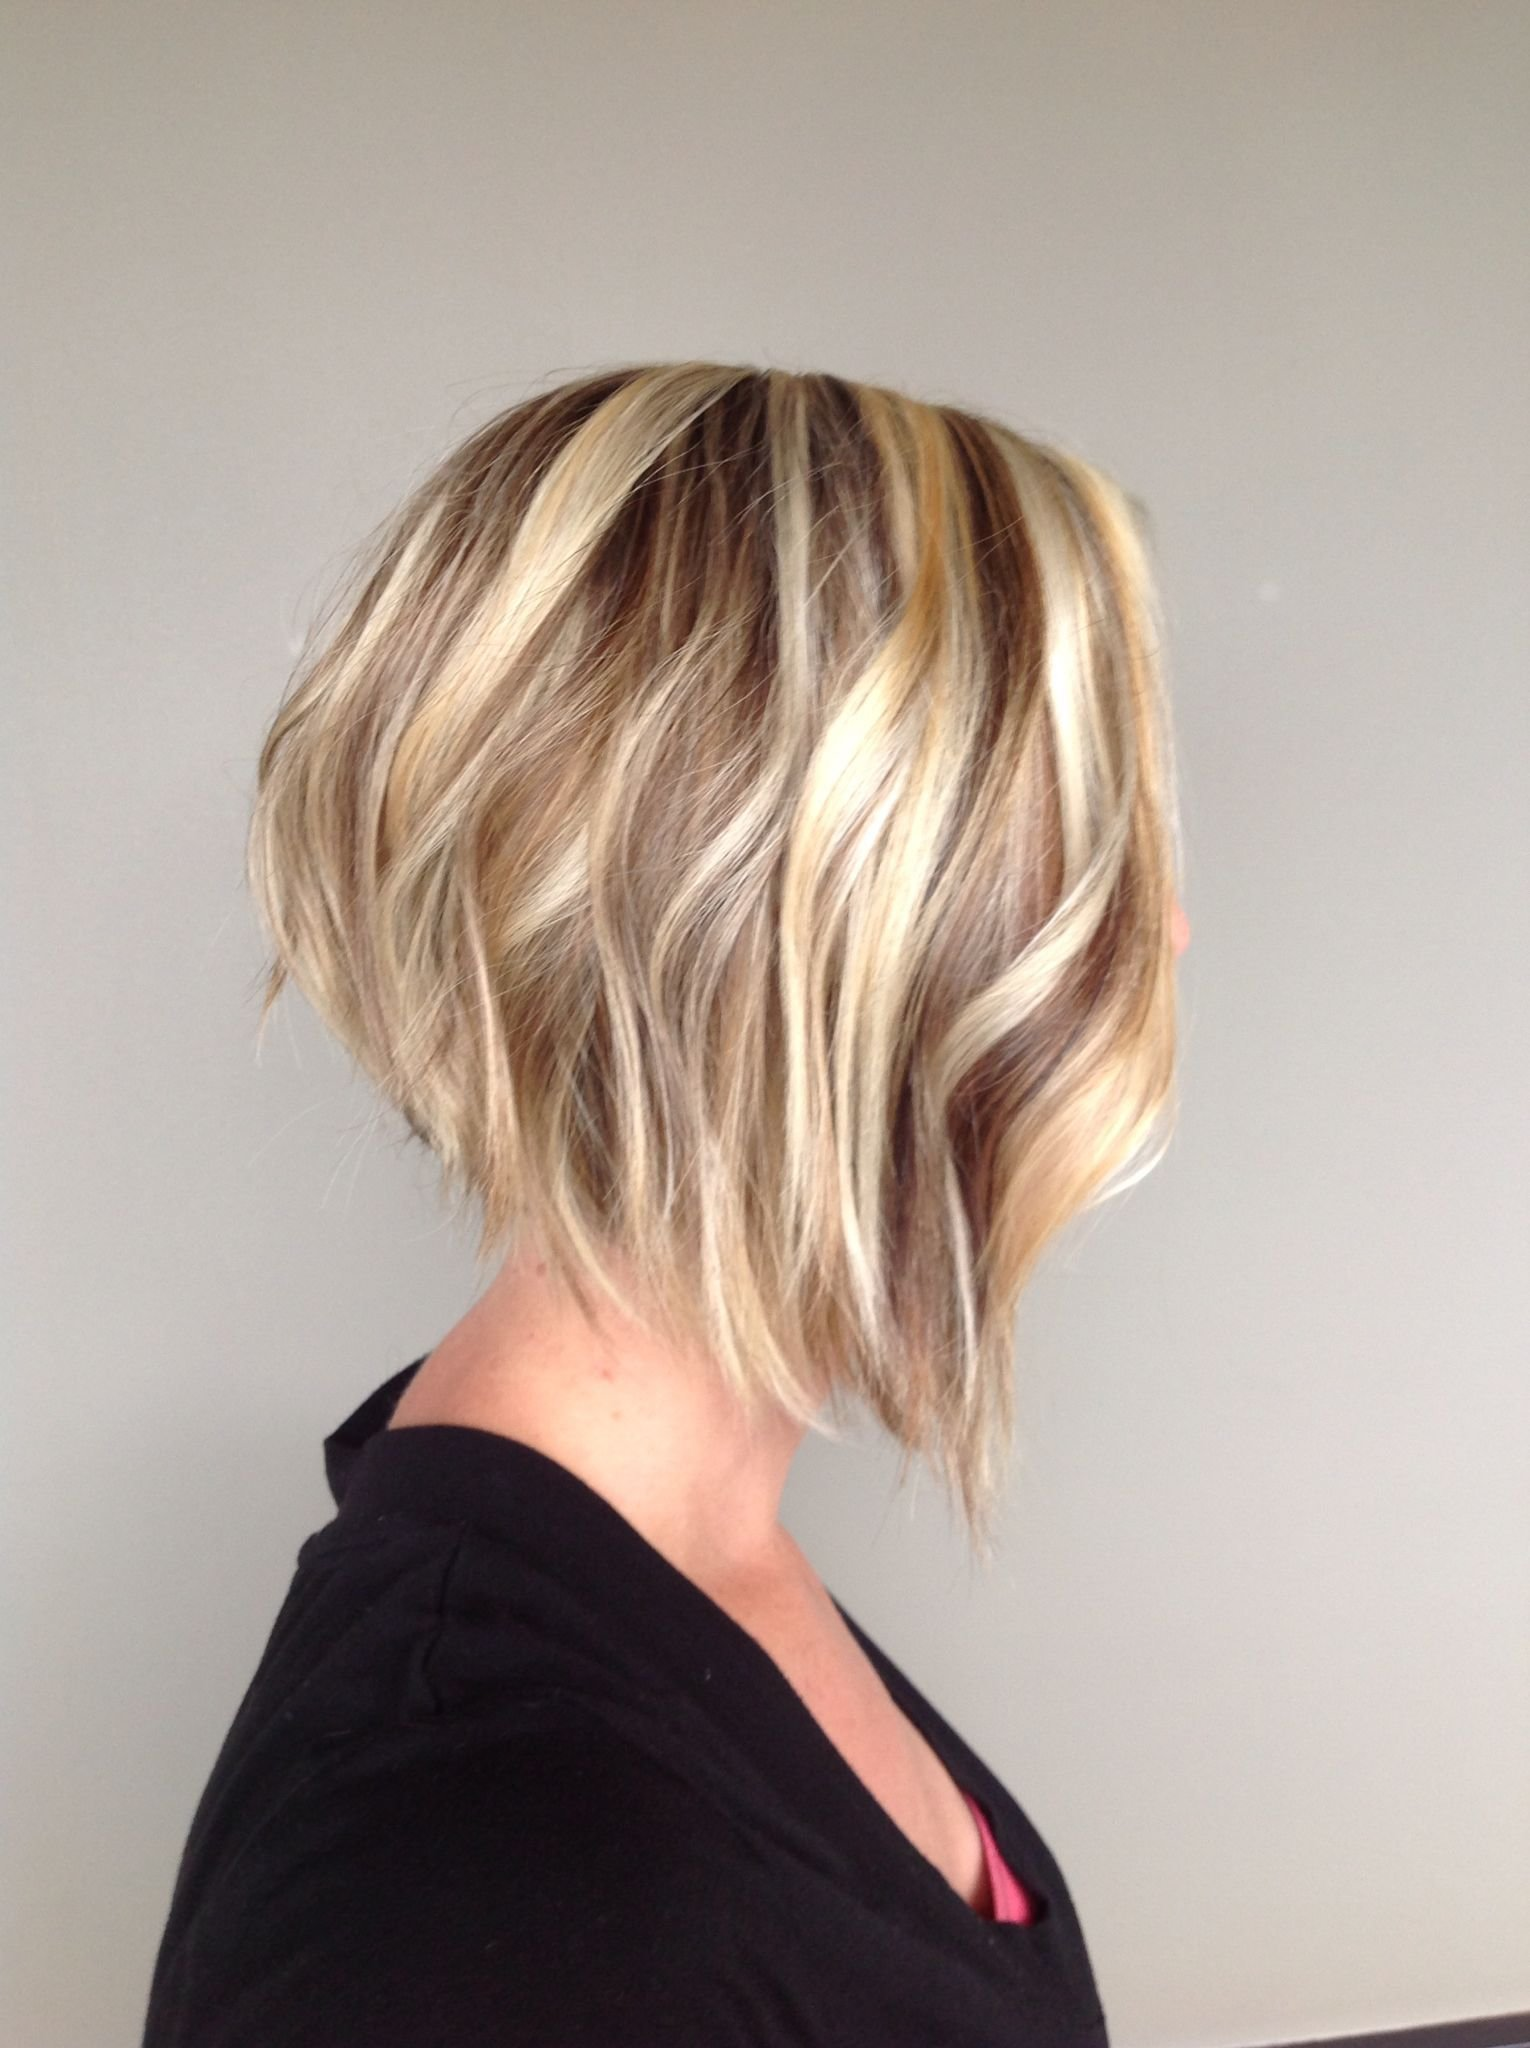 The Best Angled Bob Haircuts And Undercuts In 2019 Angled Bob Hairstyles Angled Bob Haircuts Pictures